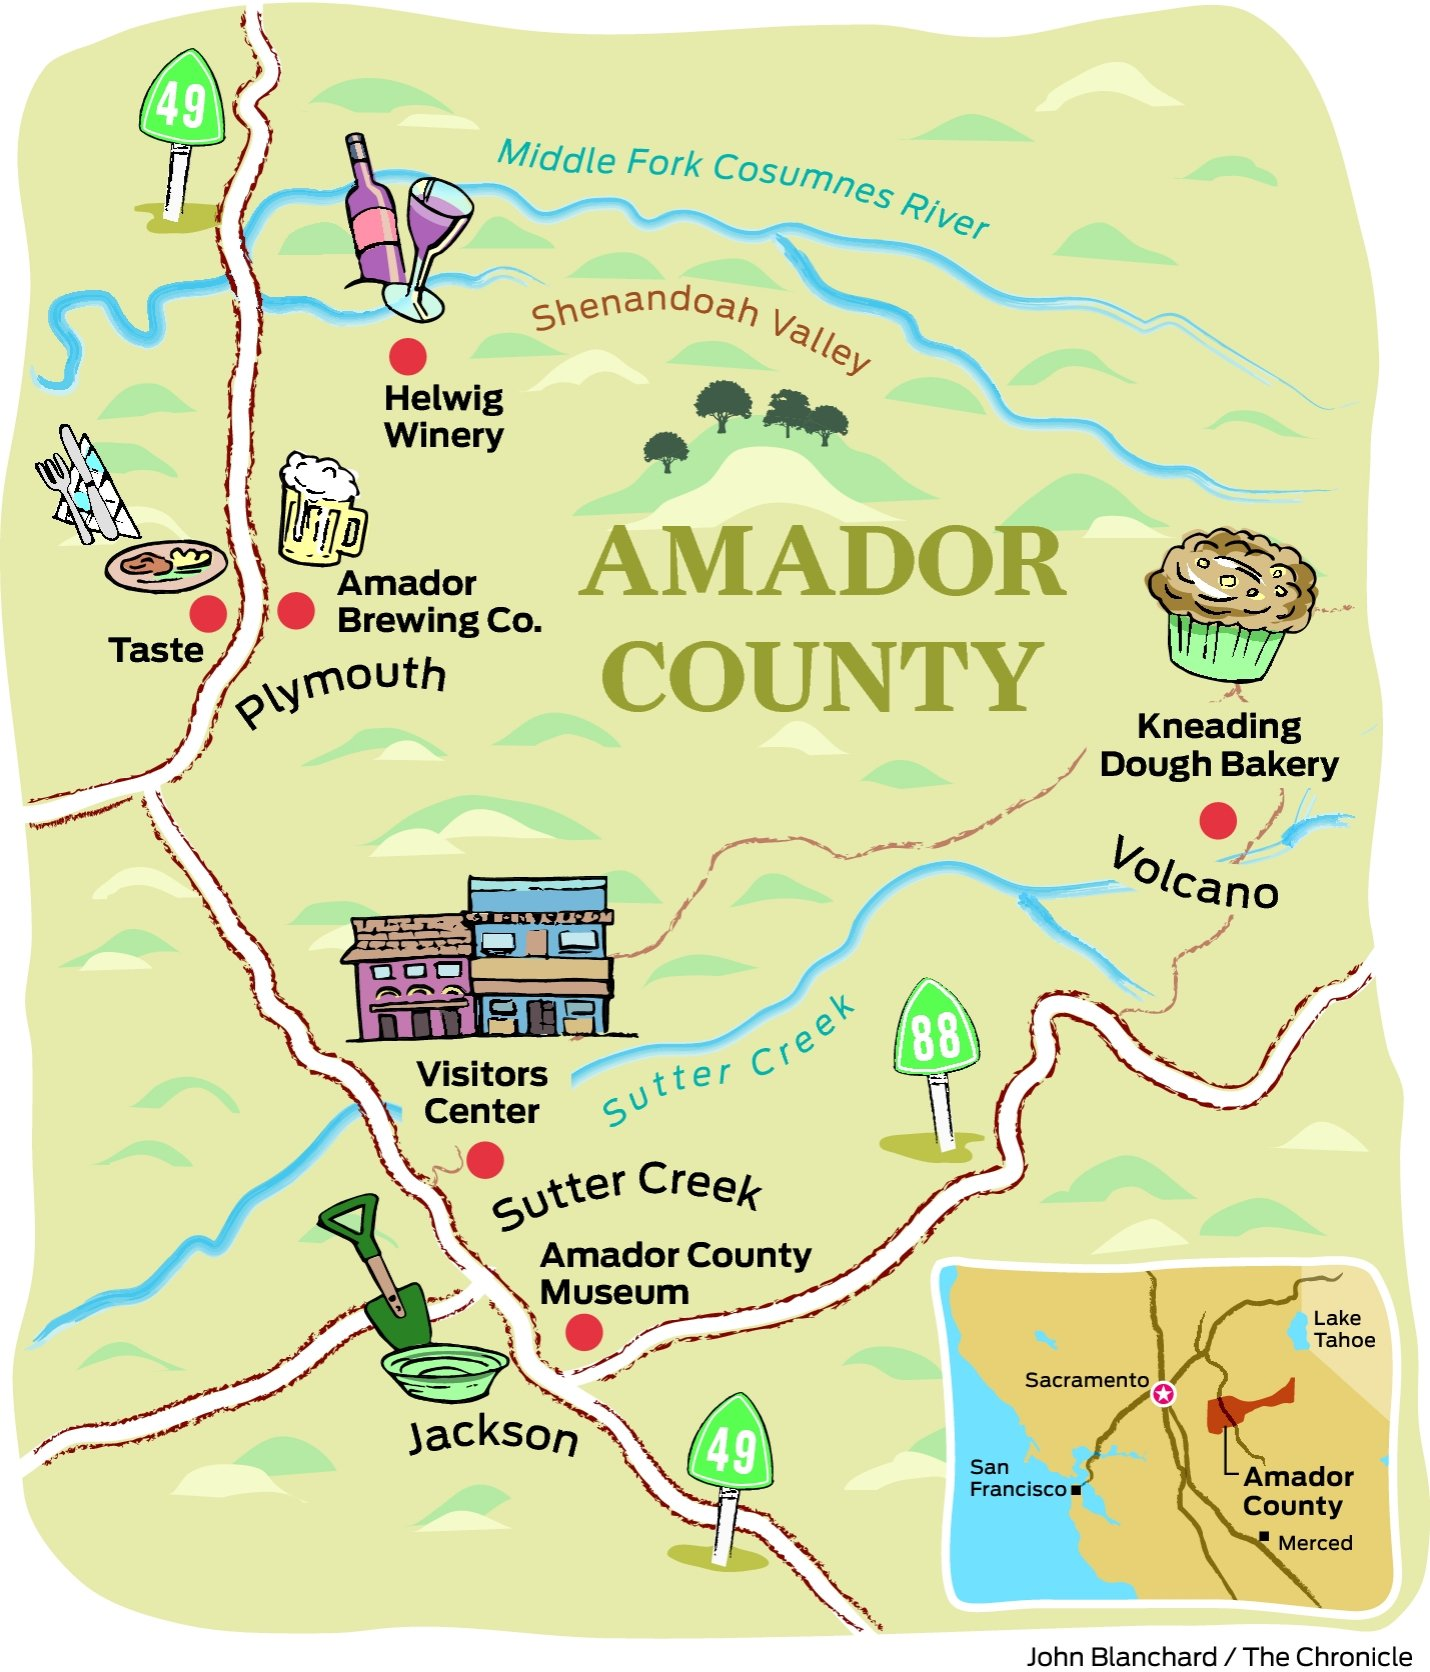 Road trip: Amador County at your own speed - SFGate